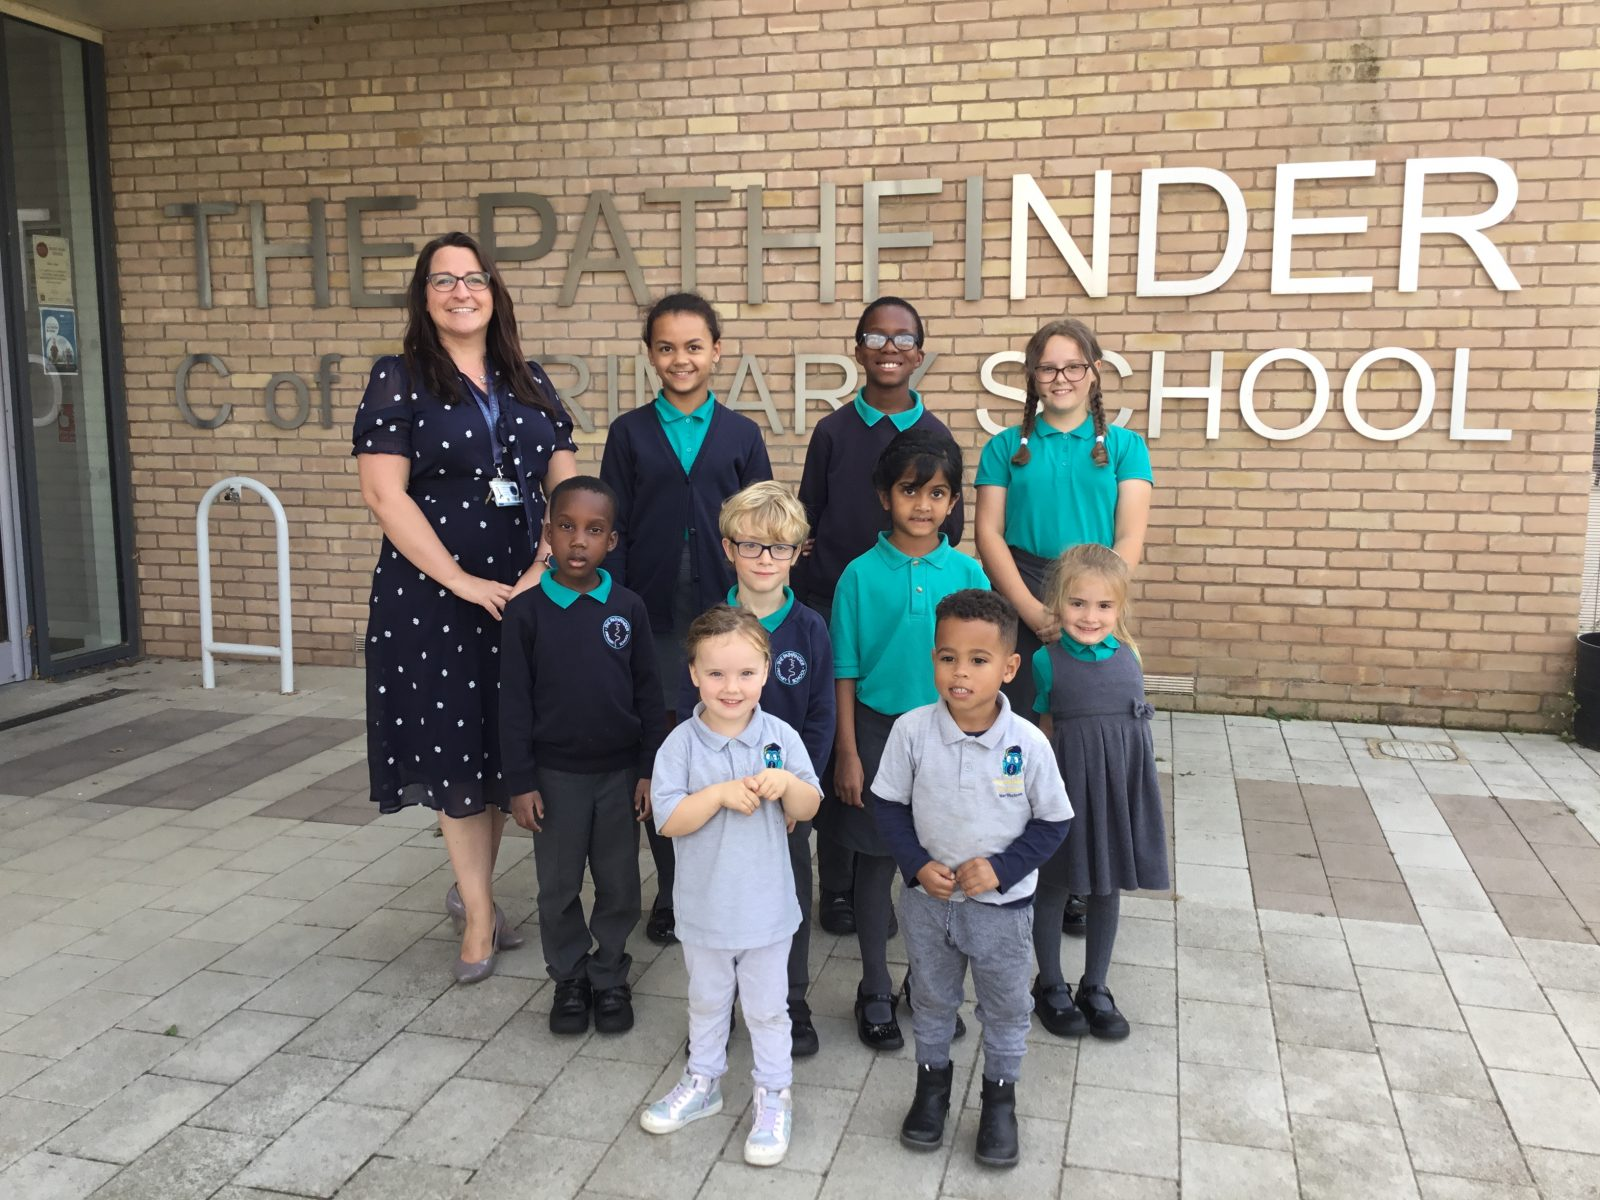 Pupils at the Pathfinder Church of England School